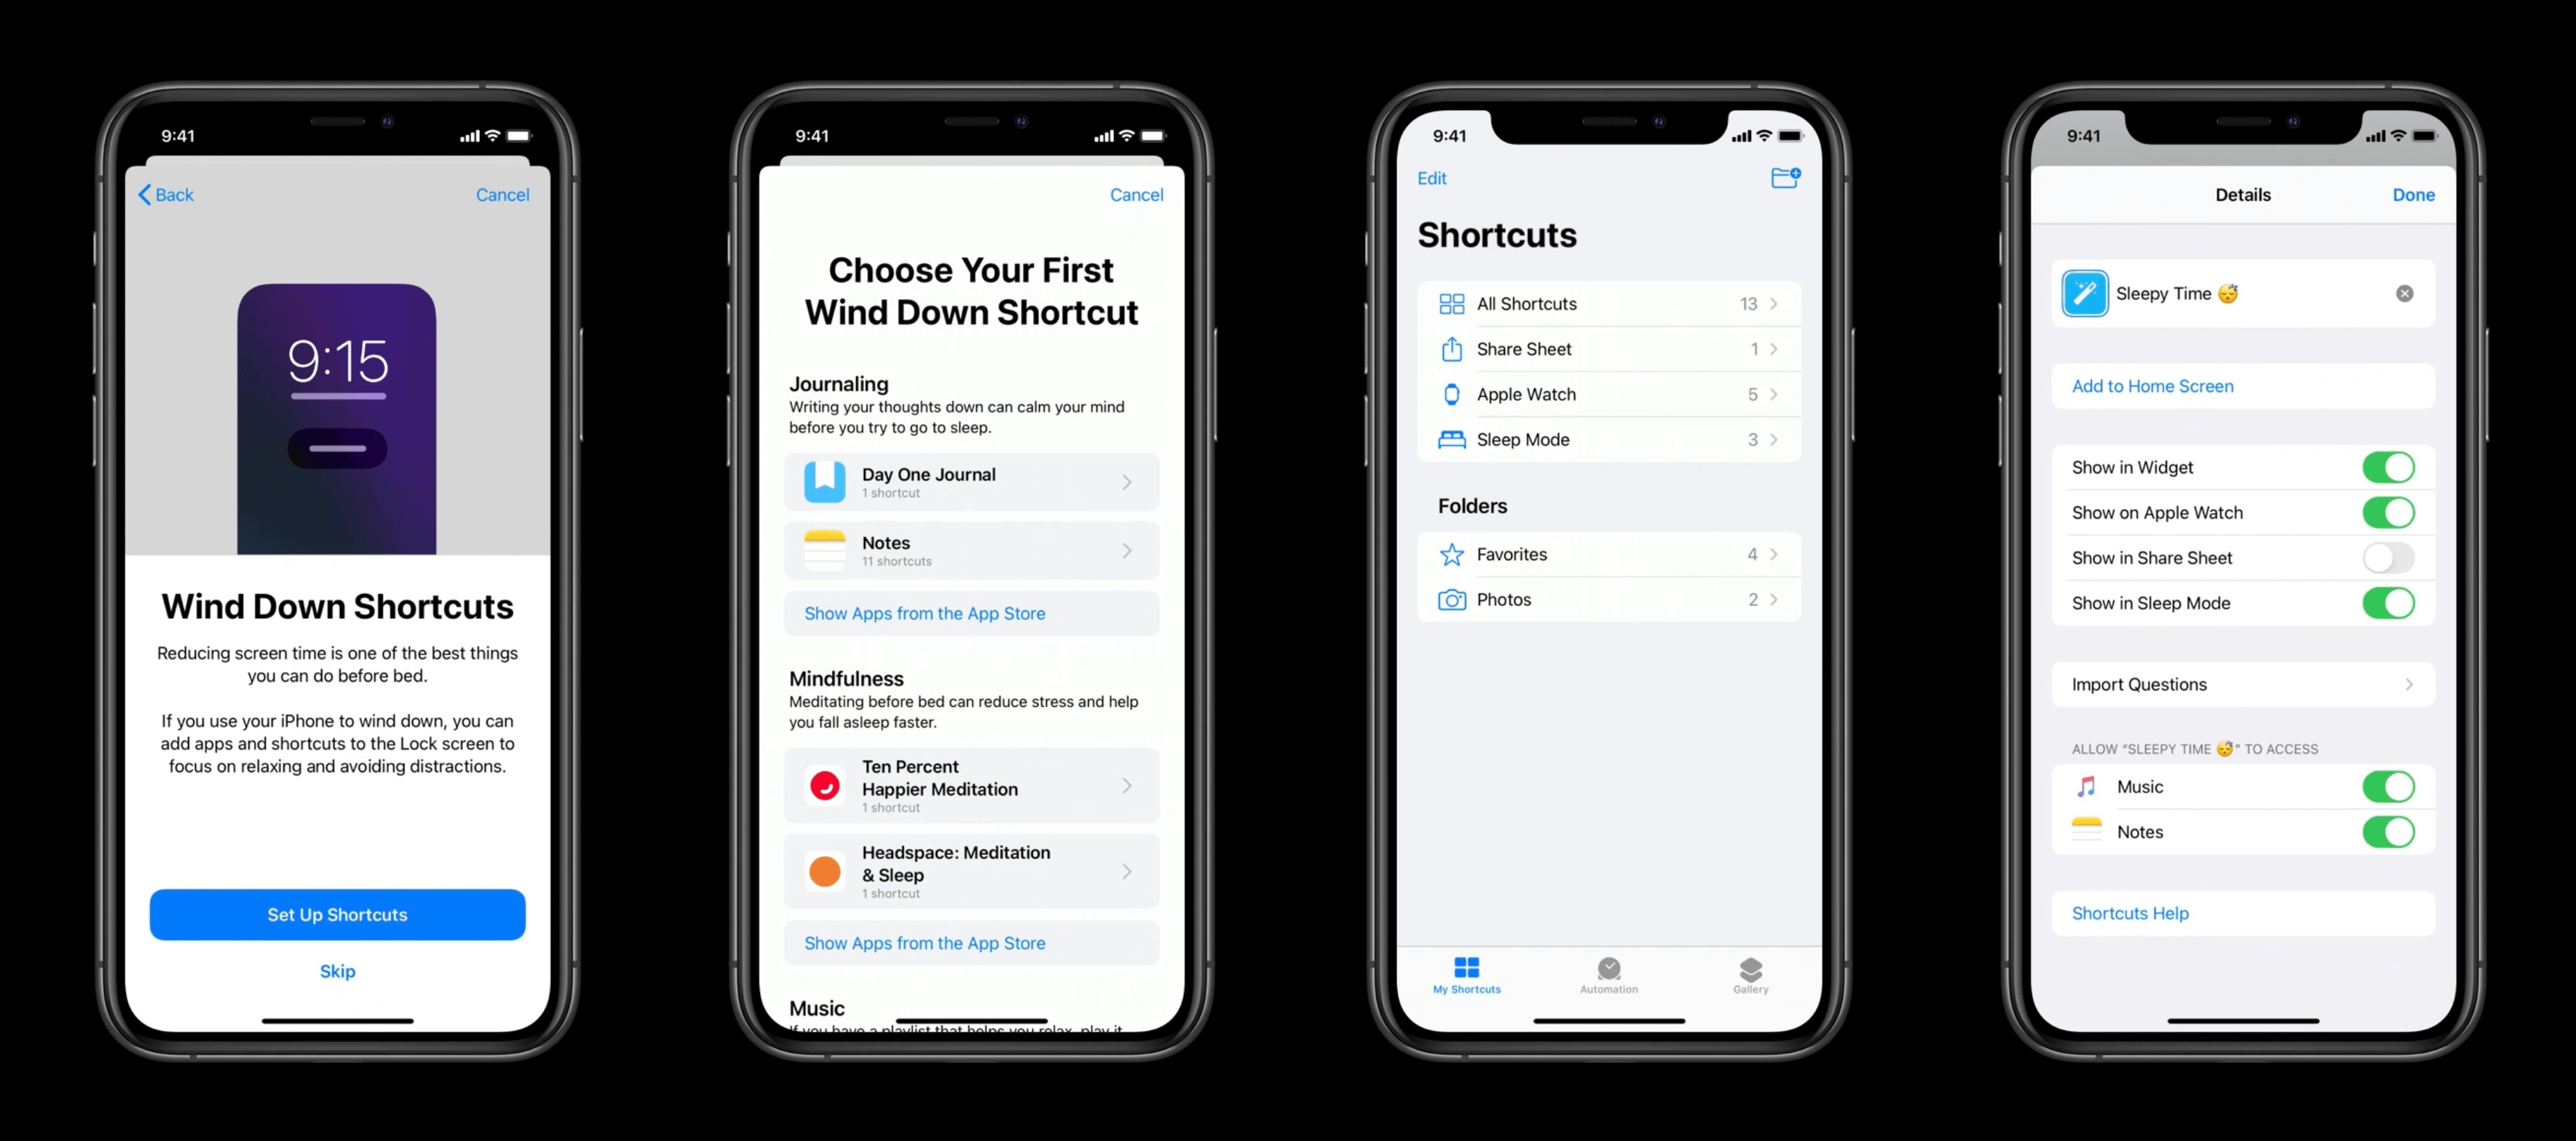 Wind Down setup (left) and configuring Wind Down shortcuts in the Shortcuts app (right).